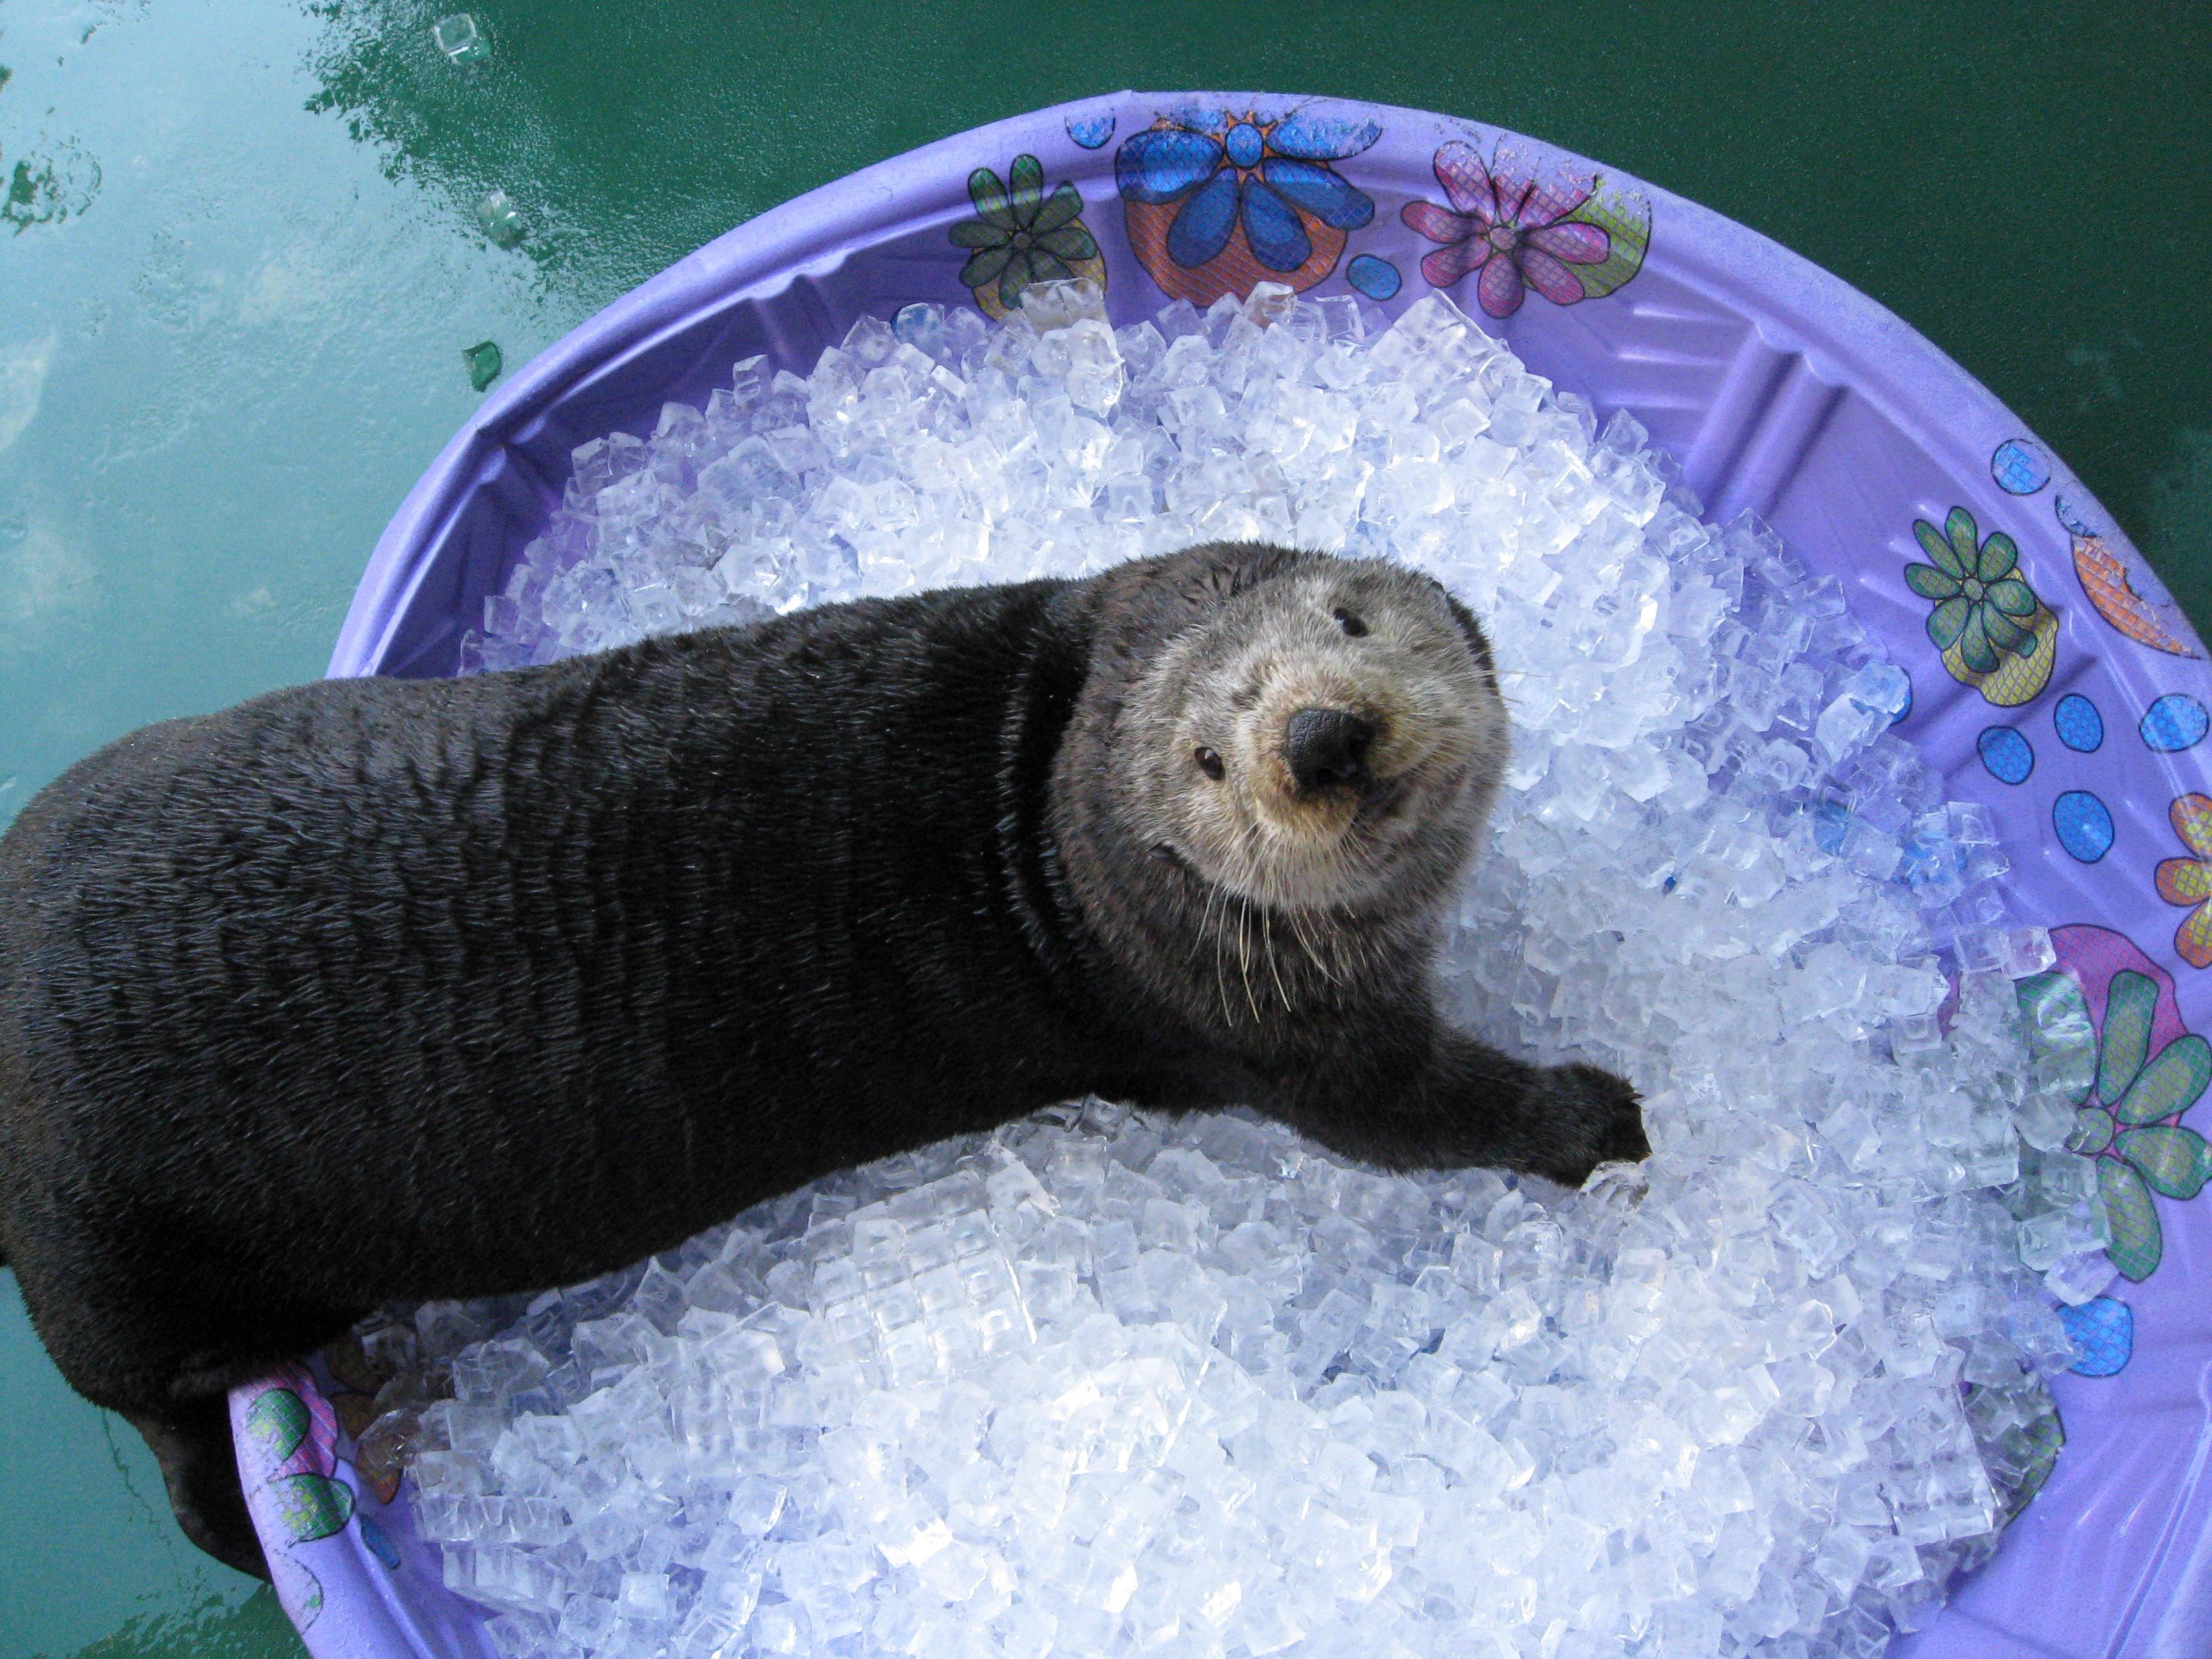 Adaa the sea otter enjoys some ice.